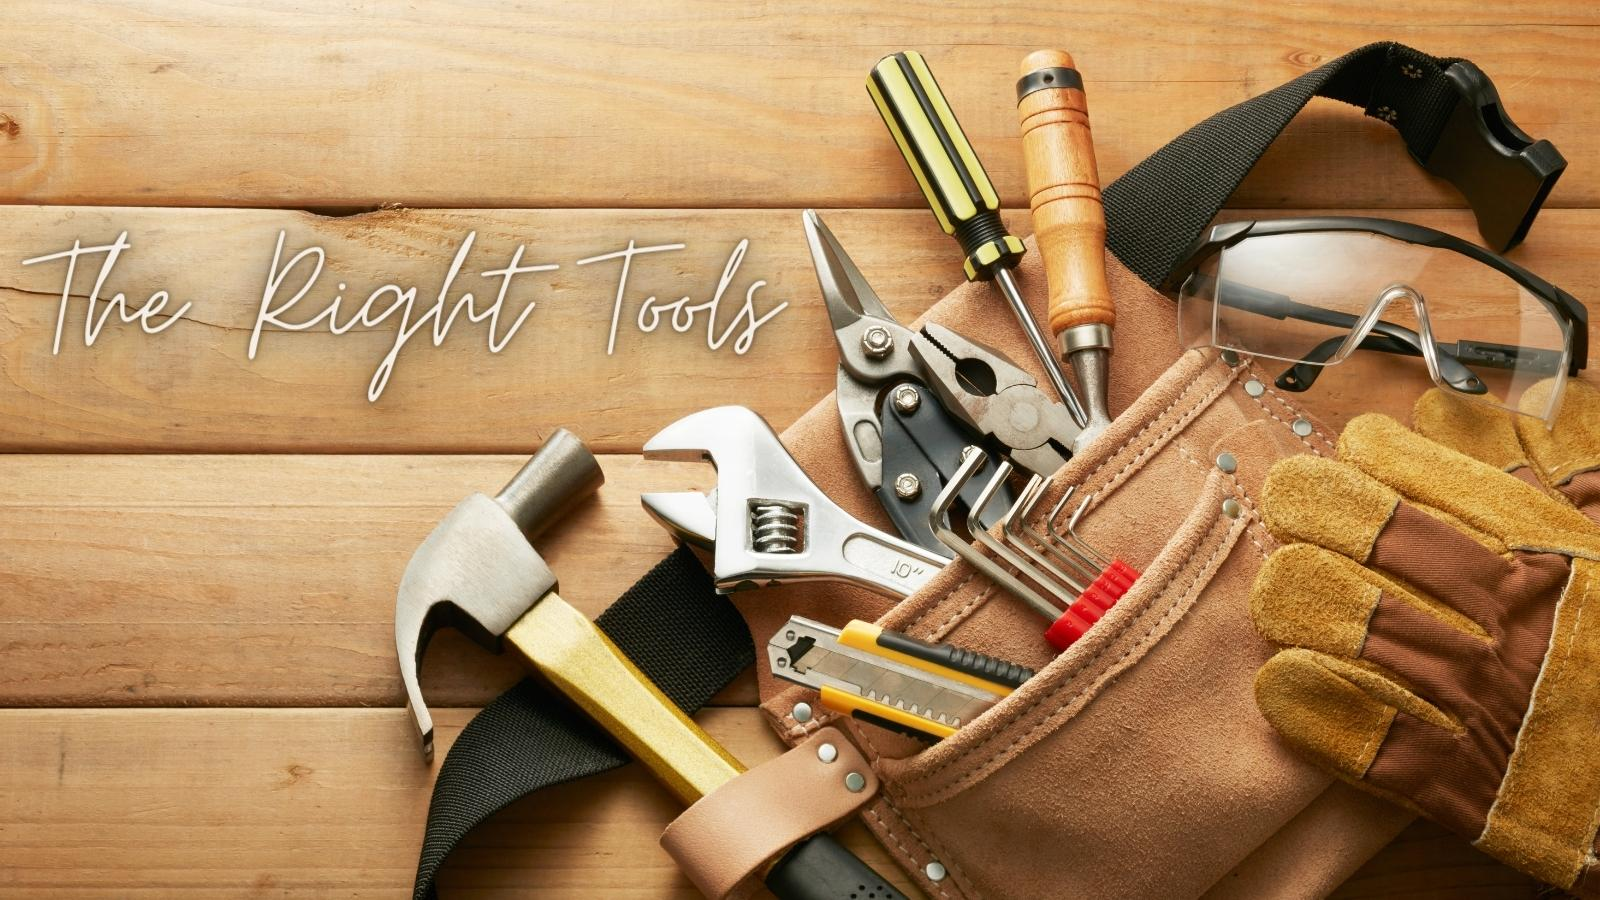 the right useful tools for your business or home